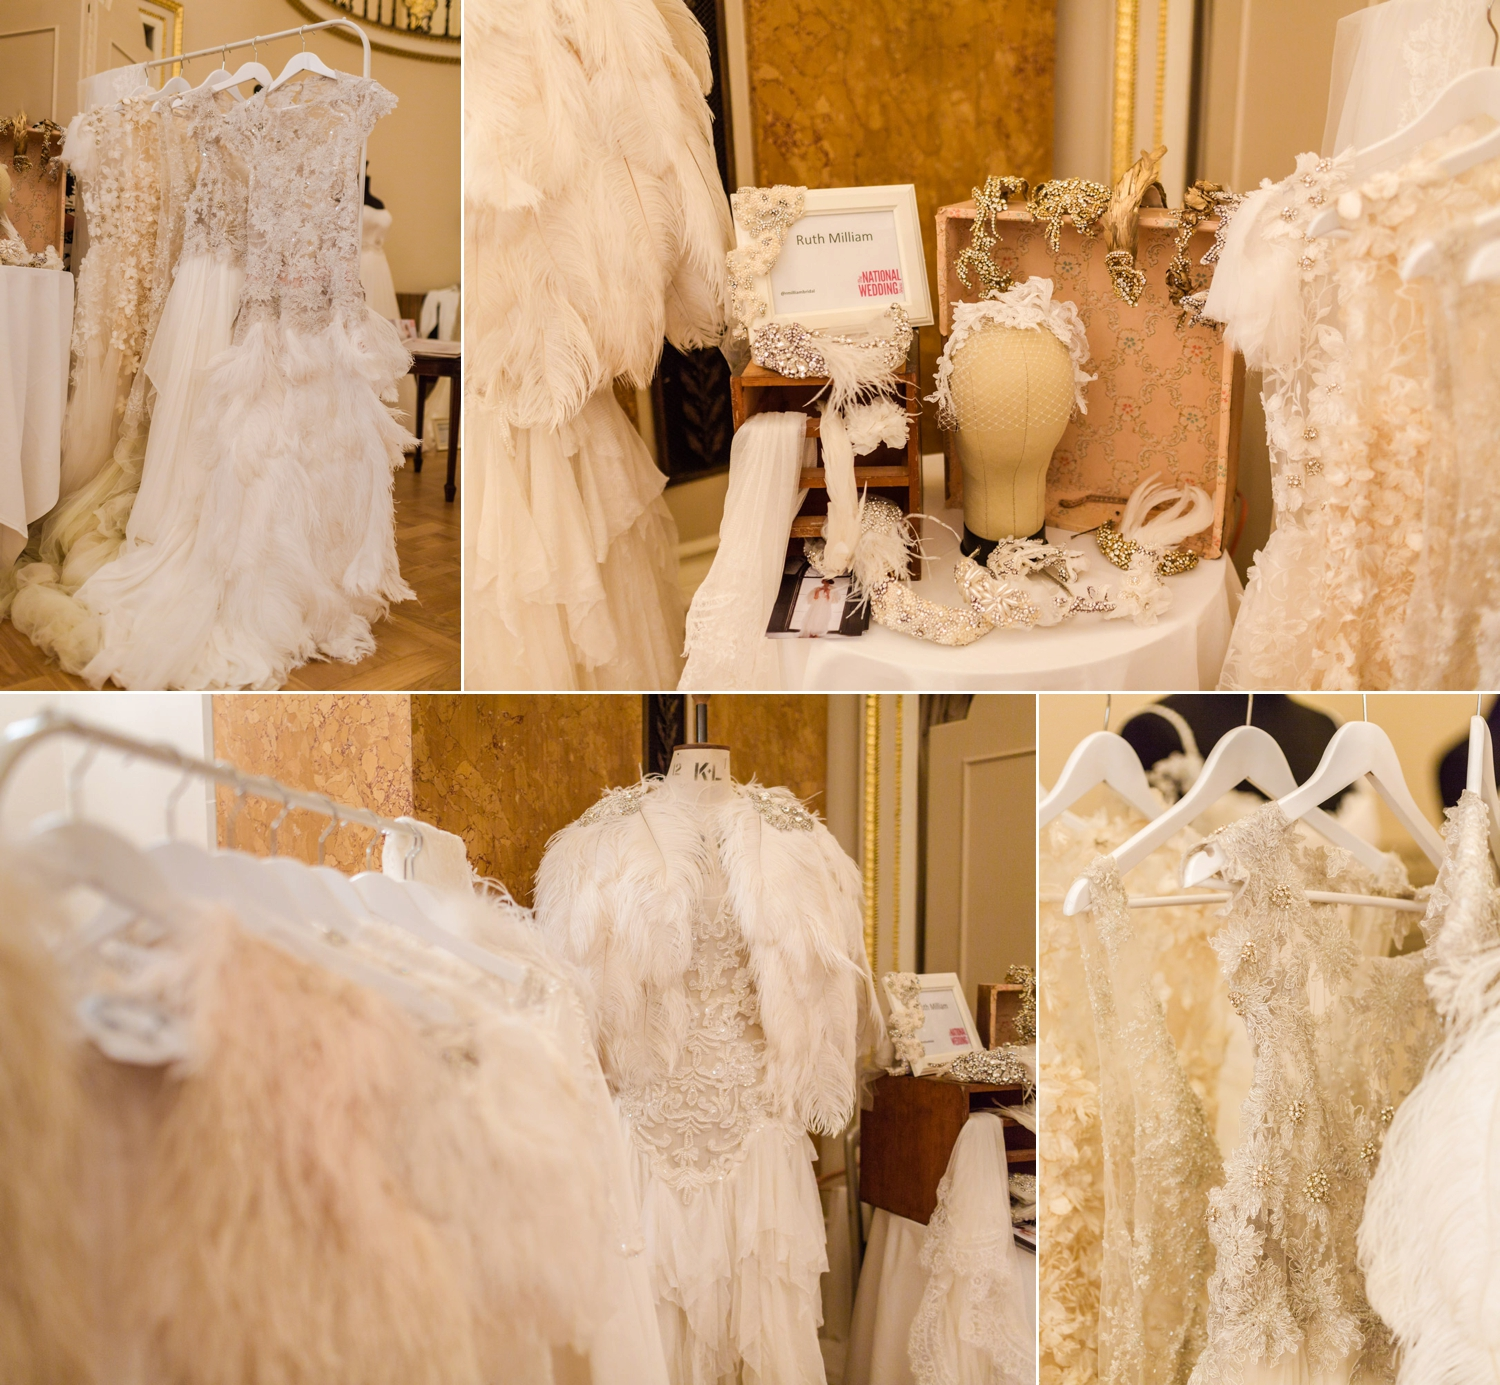 Beaded and Feathered Gowns by Ruth Milliam